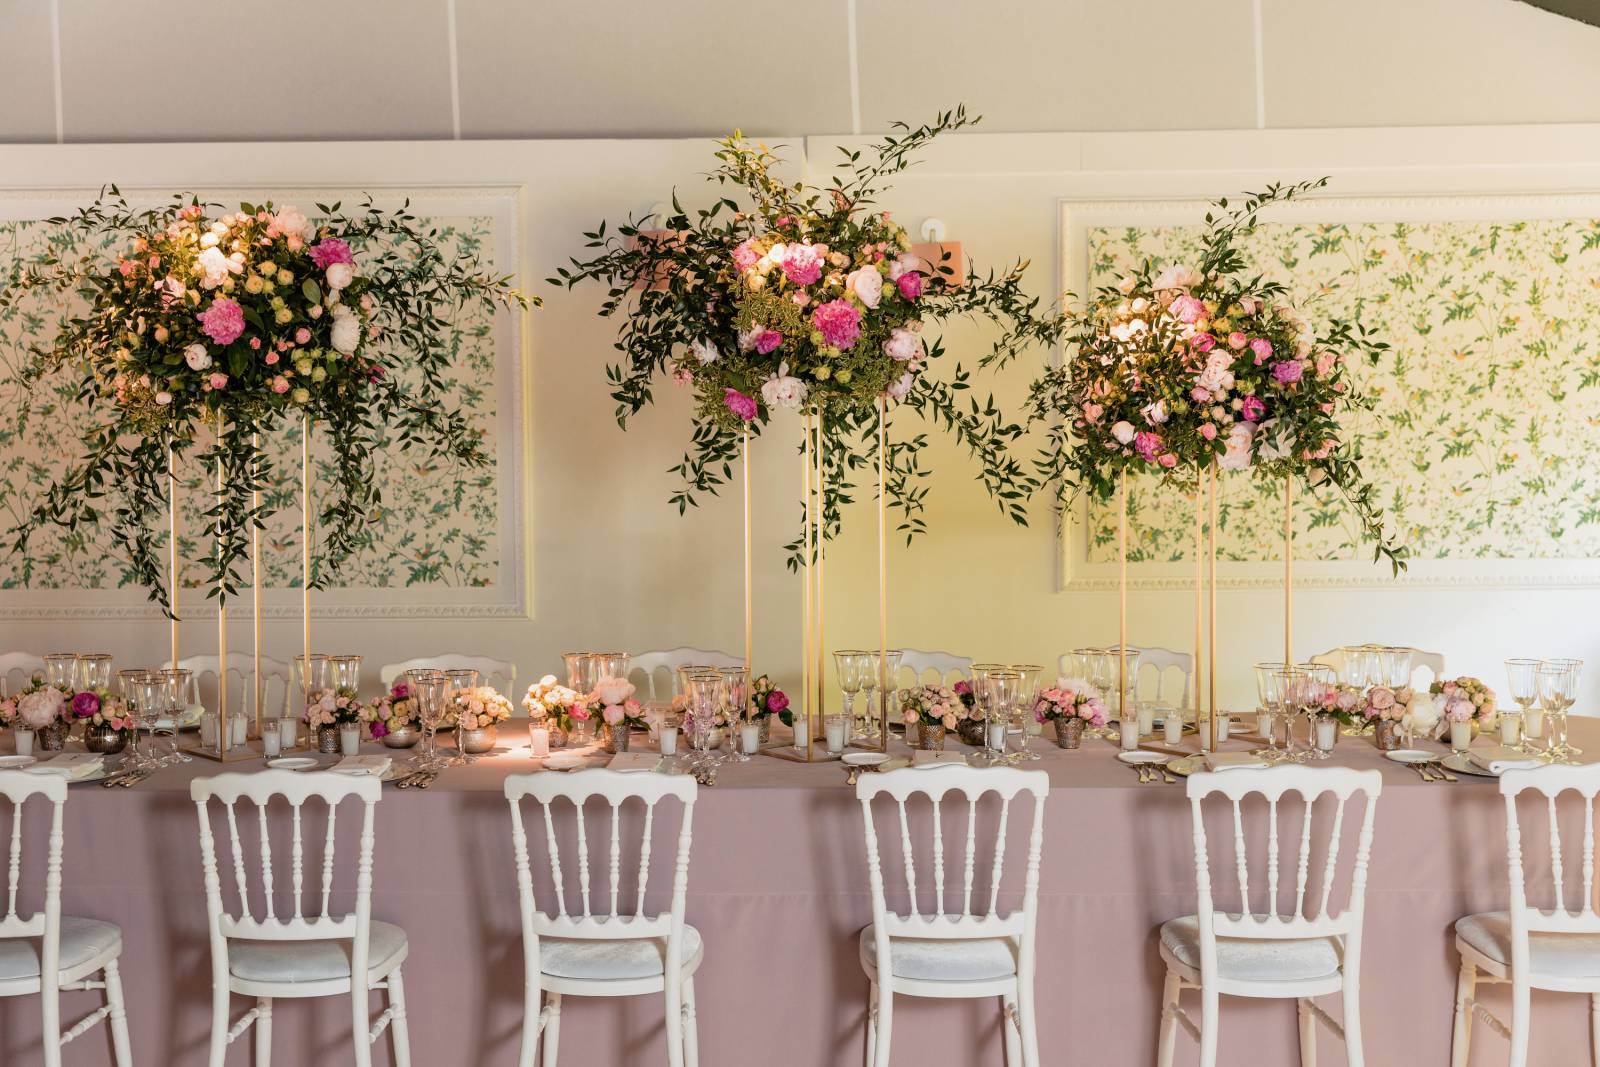 Be Your Guest - Wedding Planner - House of Weddings06-TABLE-2019-Benoit Vos